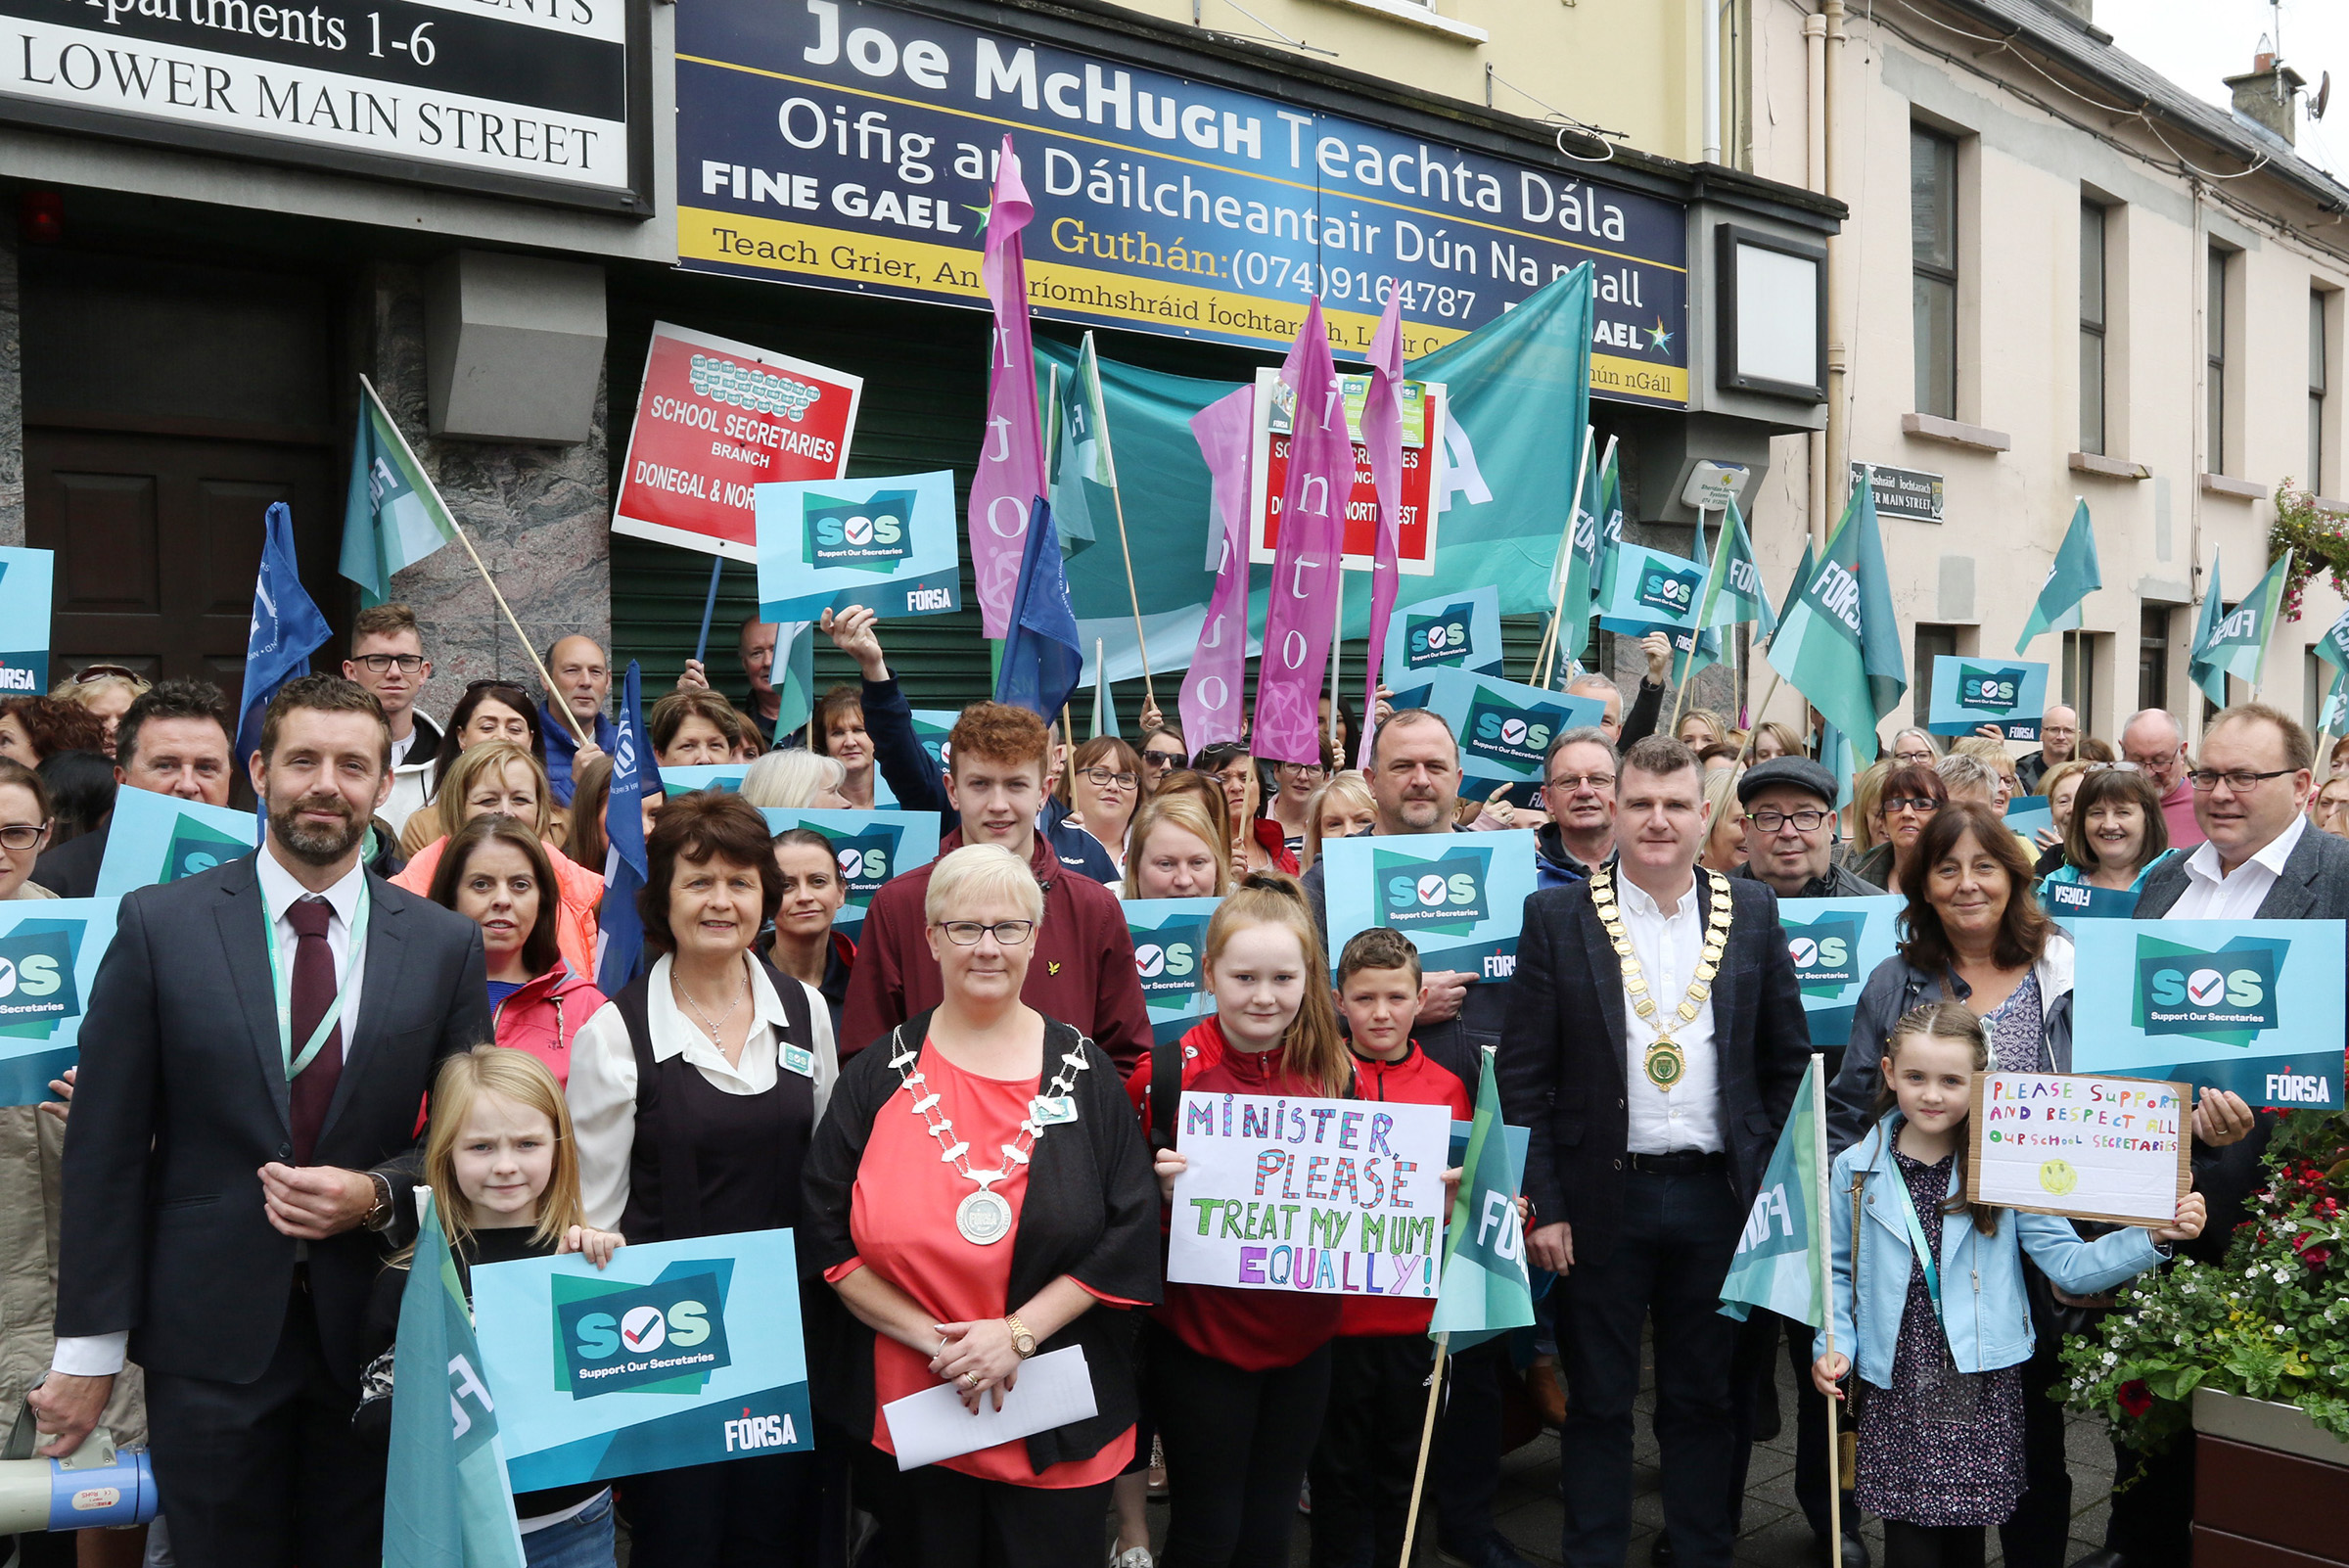 DEPUTY MICHAEL LOWRY CALLS ON EDUCATION MINISTER JOE MCHUGH TO ENGAGE WITH SCHOOL SECRETARIES